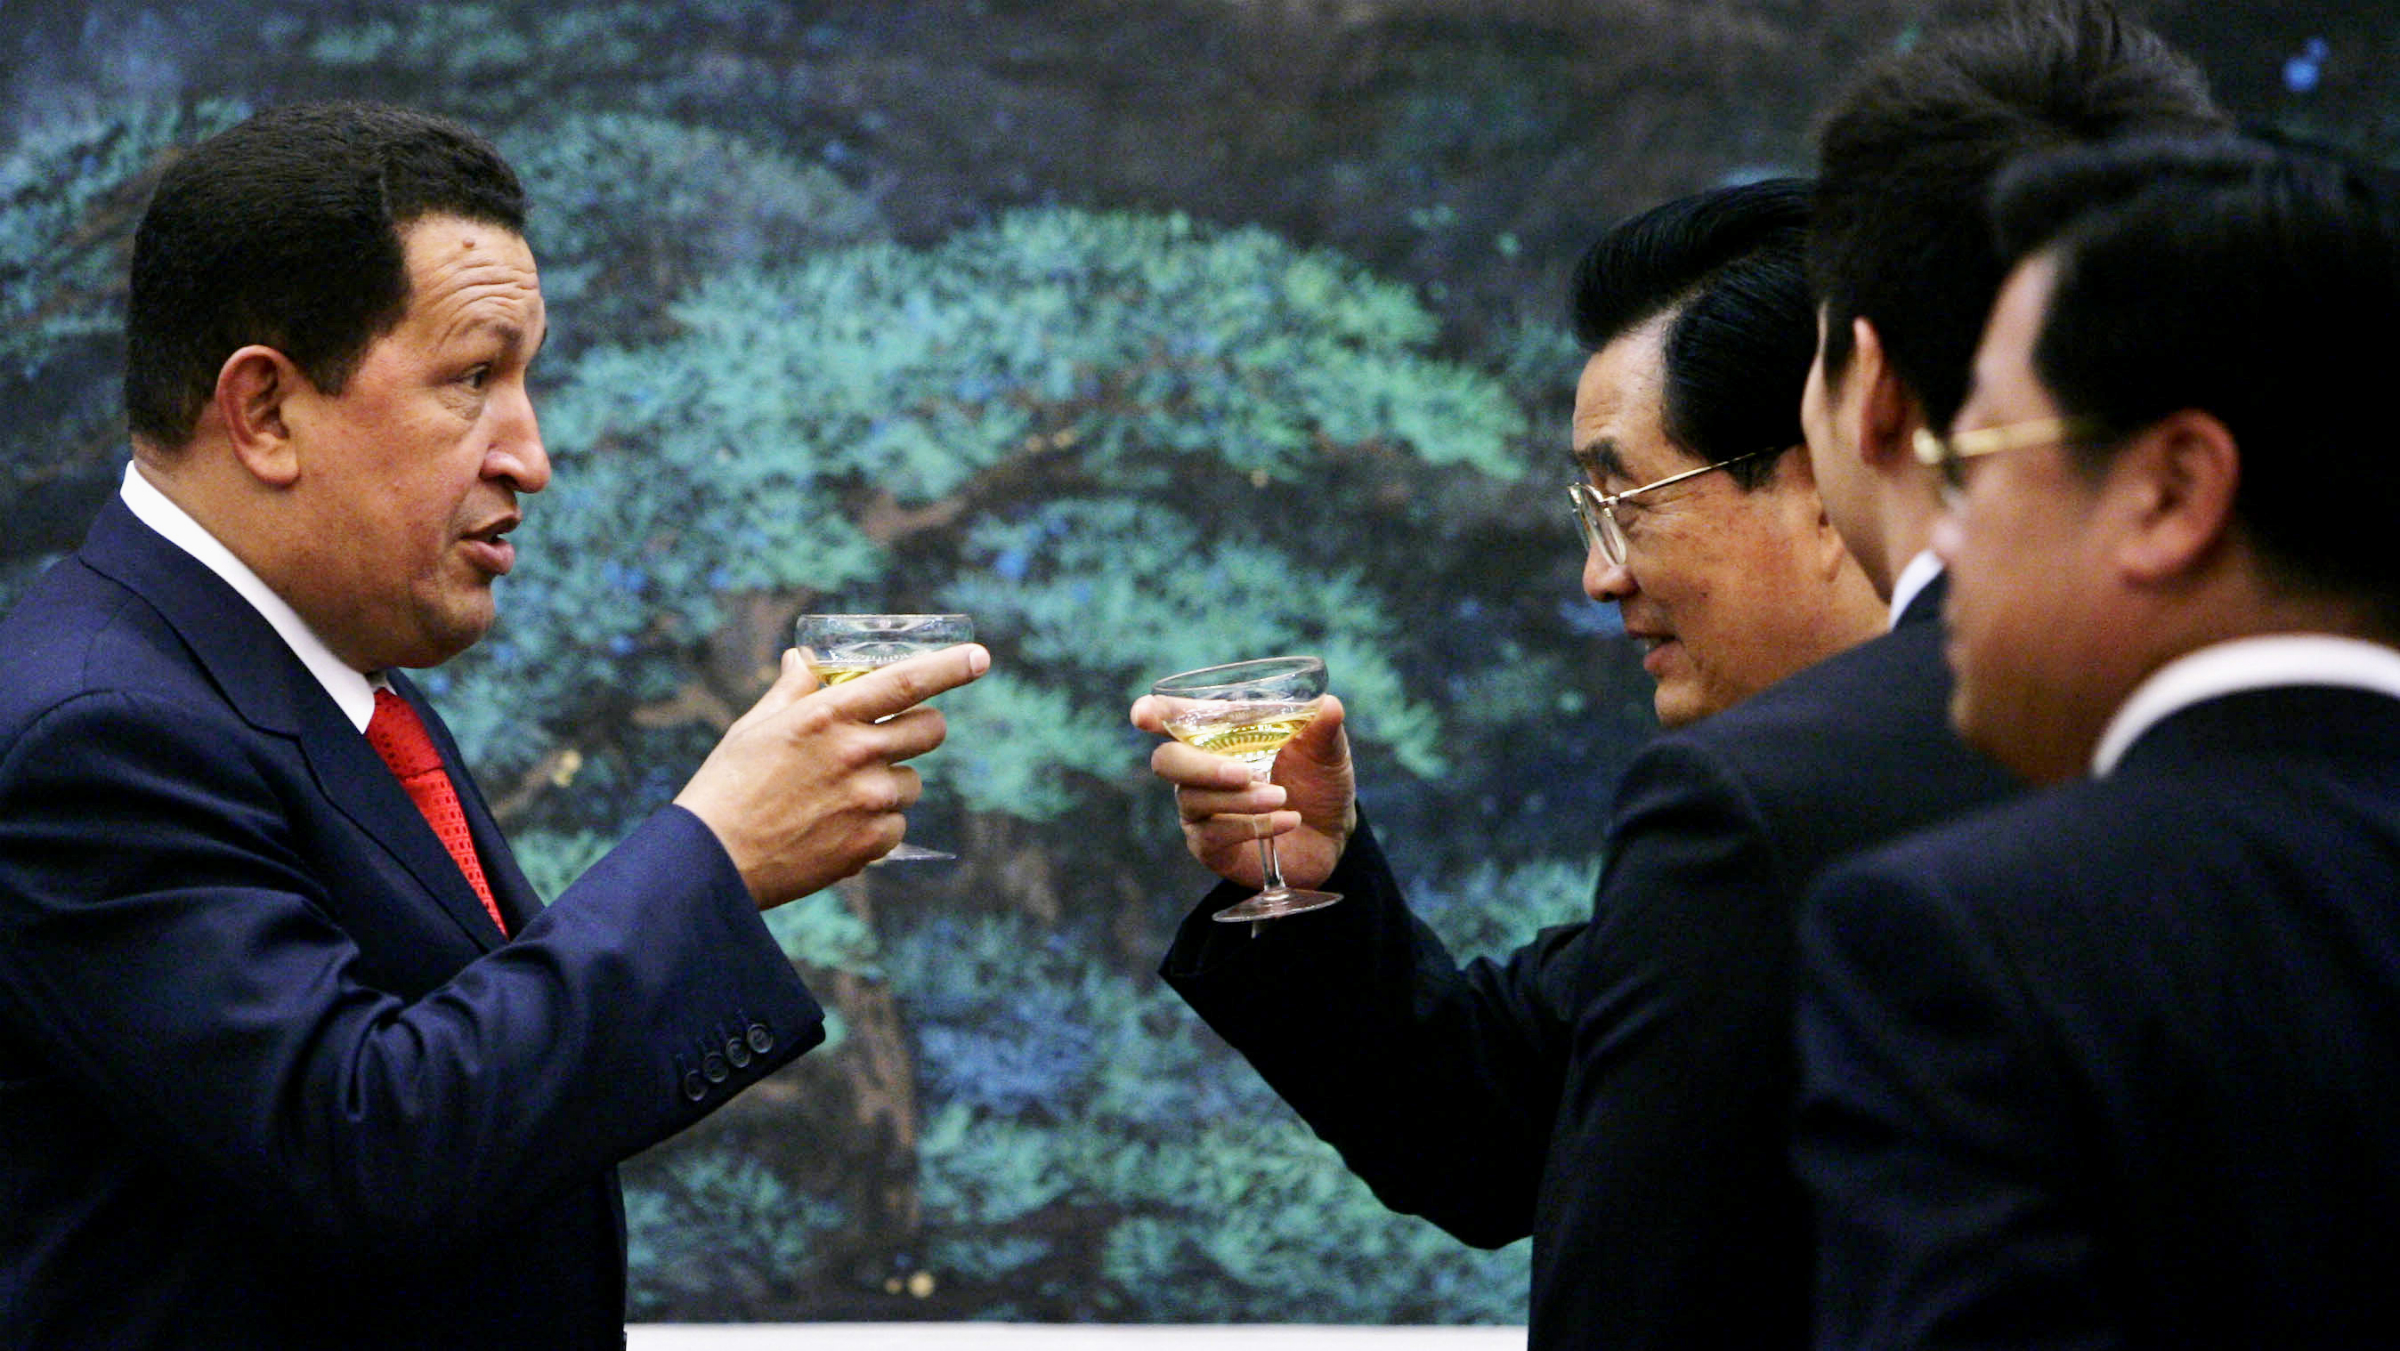 Chinese President Hu Jintao, right, and Venezuelan President Hugo Chavez toast after a ceremony to sign agreements between the two nations at the Great Hall of the People in Beijing Wednesday, Sept. 24, 2008. Chavez said his country's oil exports to China could soar to 1 million barrels a day by 2012. Chavez's visit this week to Beijing has focused on trade and business ties, including refinery construction deals and China's launch of a Venezuelan communications satellite. (AP Photo/ Elizabeth Dalziel